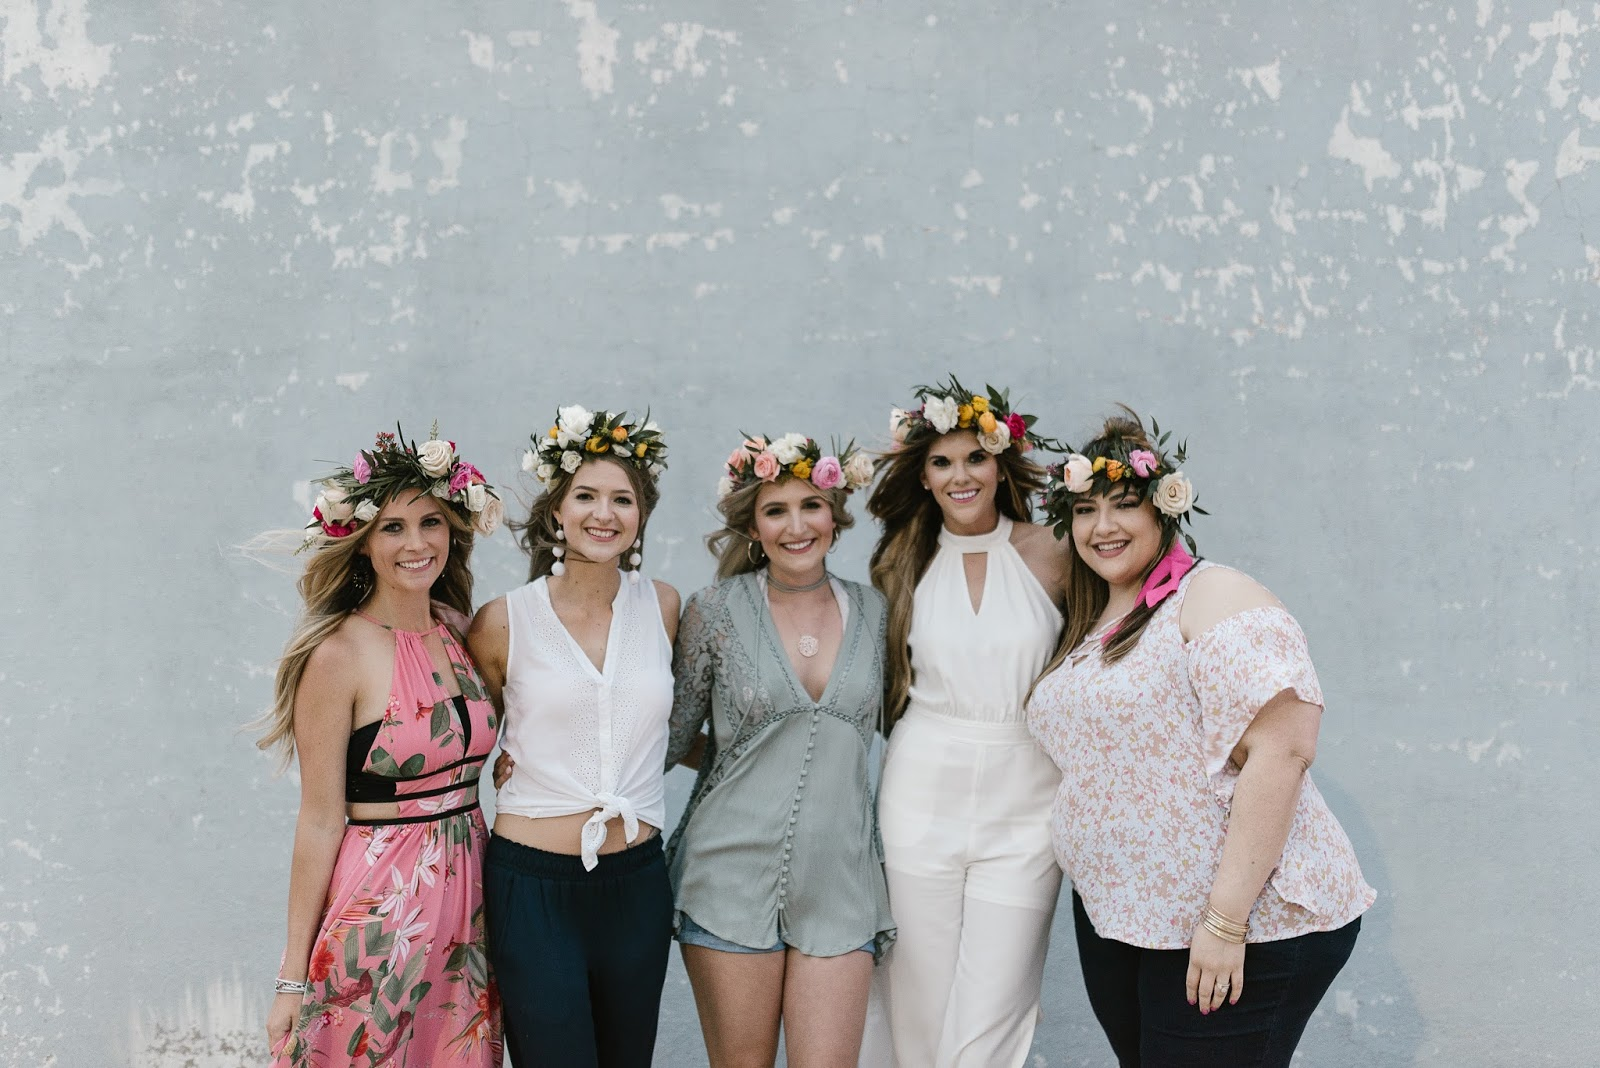 Cocktails + Crowns // Flower Crown Party | beautywithlily.com